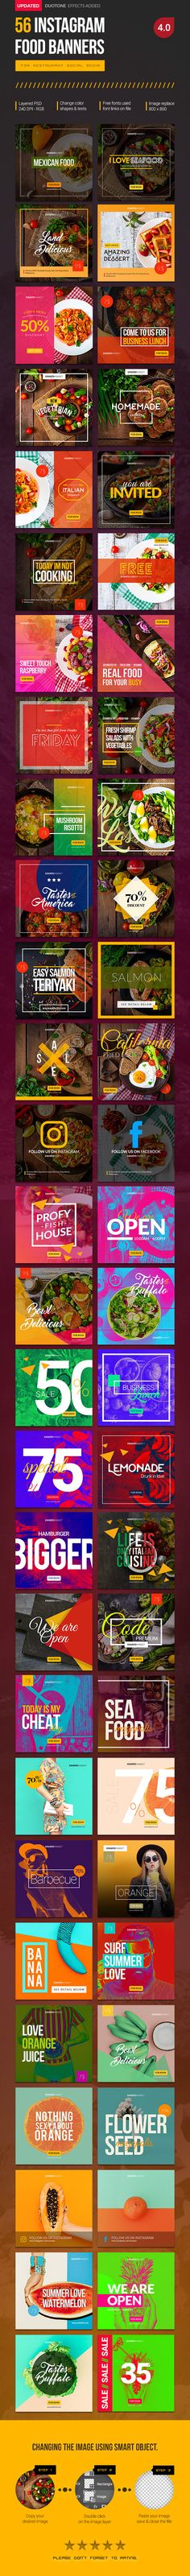 Instagram food banners for restaurant pages. Can be used for various food business, such as restaurant, cafe, fast food services and etc. Very easy to change colour variations, photos and elements.